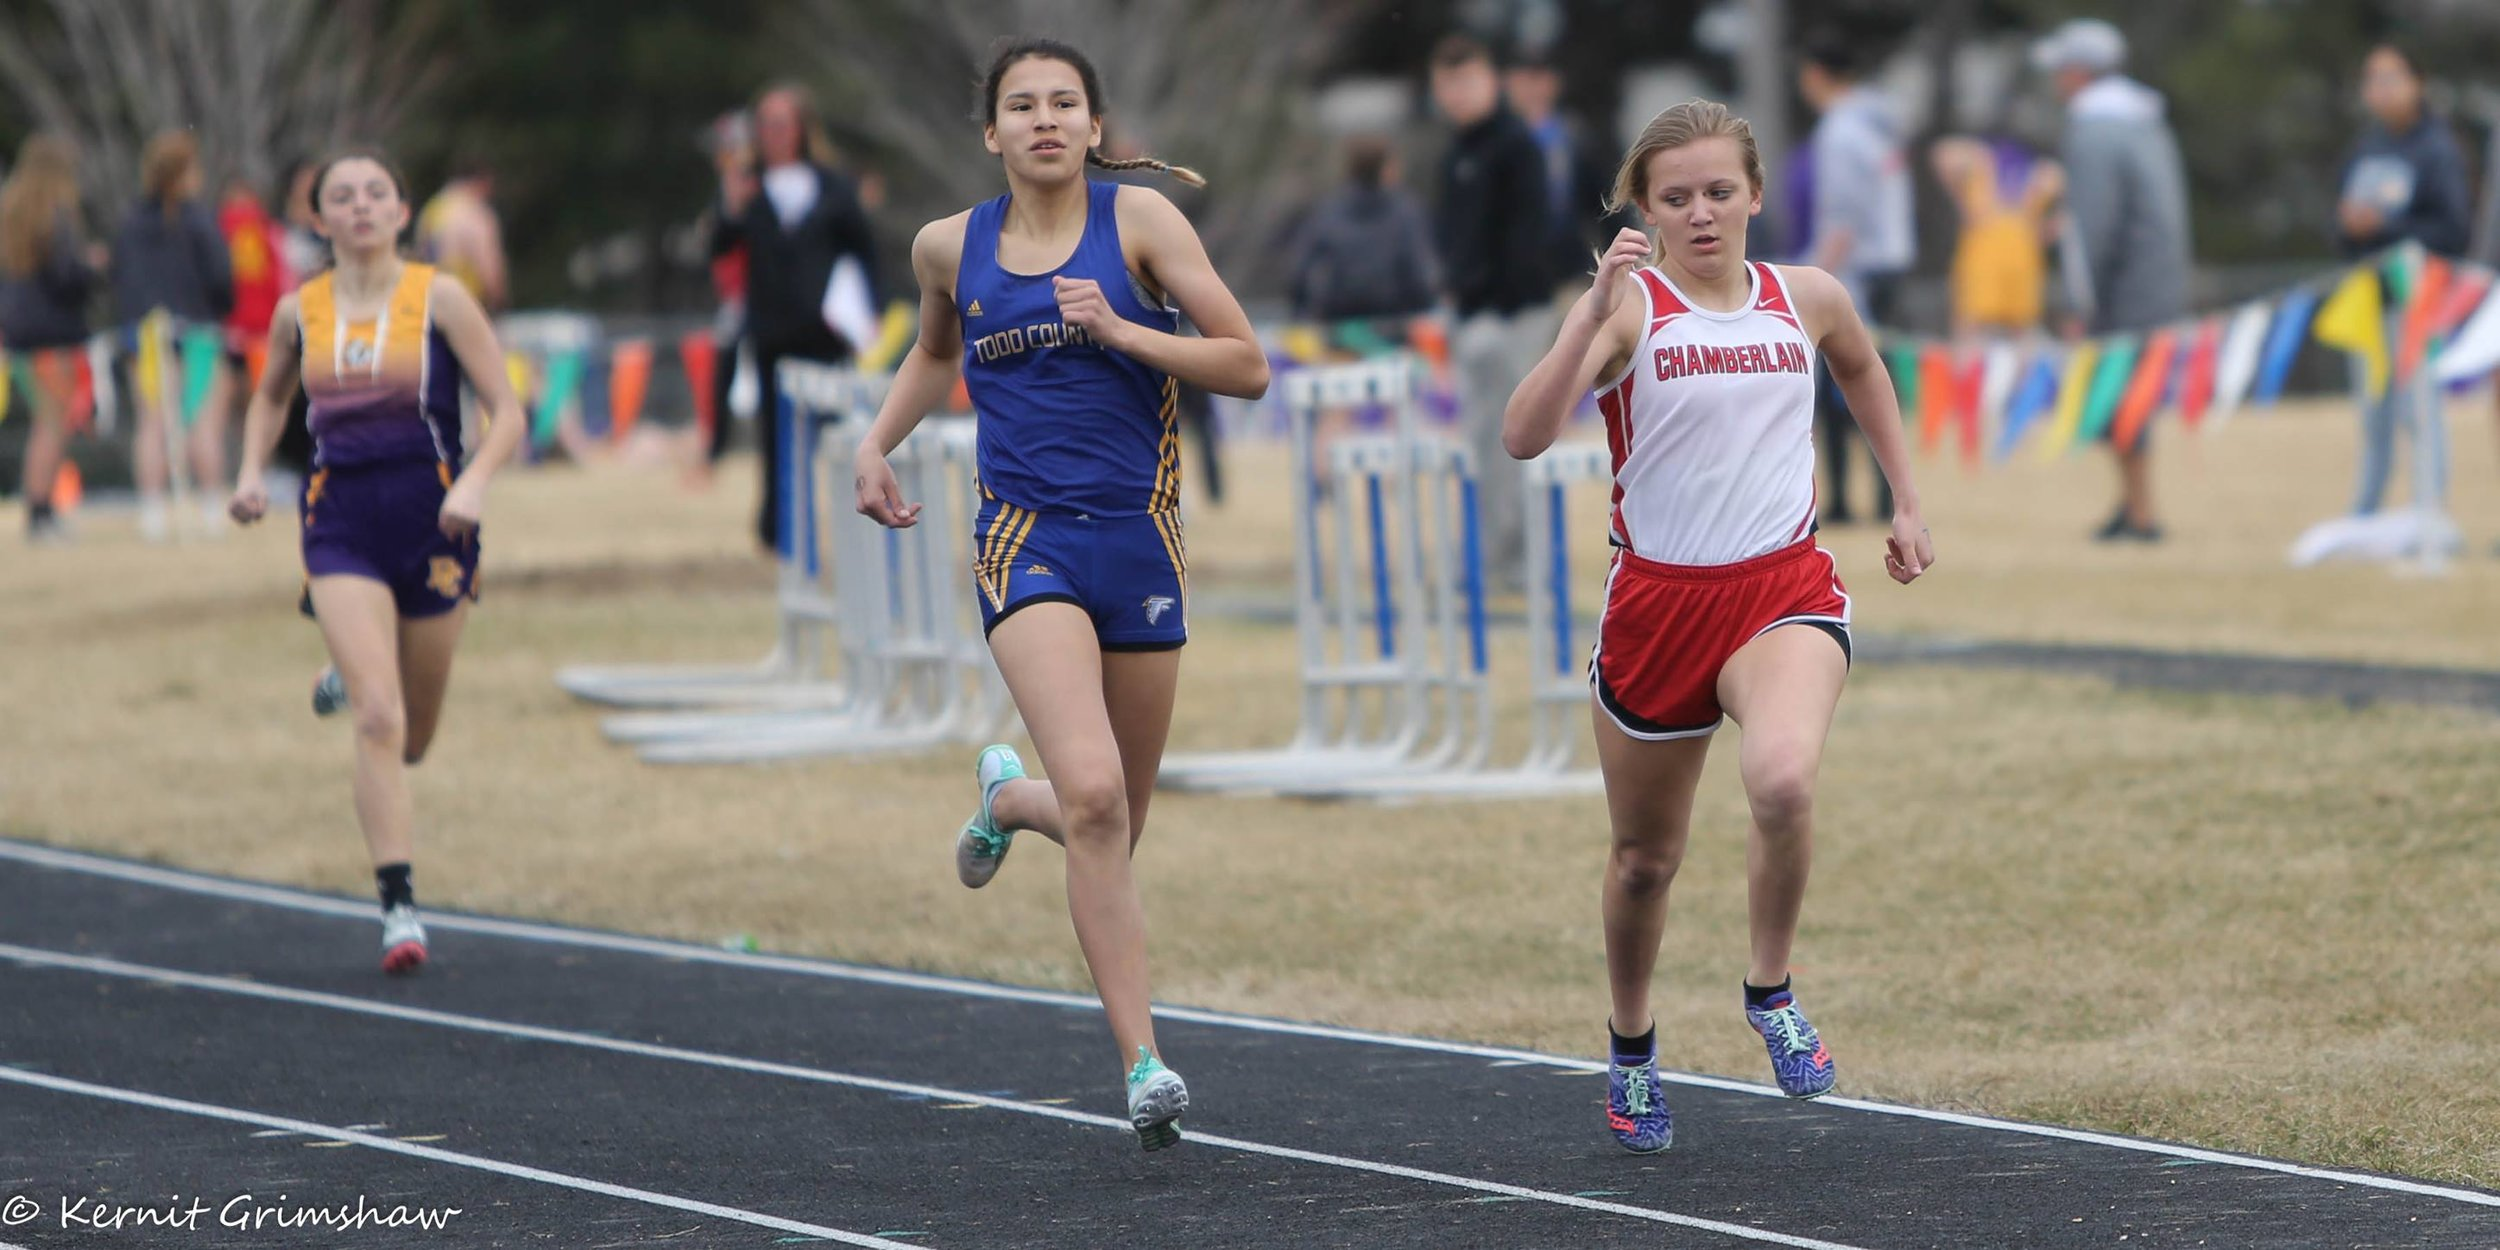 - Porch, seen here running the 800 meters, finished 3rd in this event with a rock-solid 2:34 performance.In the 400 meters, Porch finished 3rd with another great opener of 67 seconds.